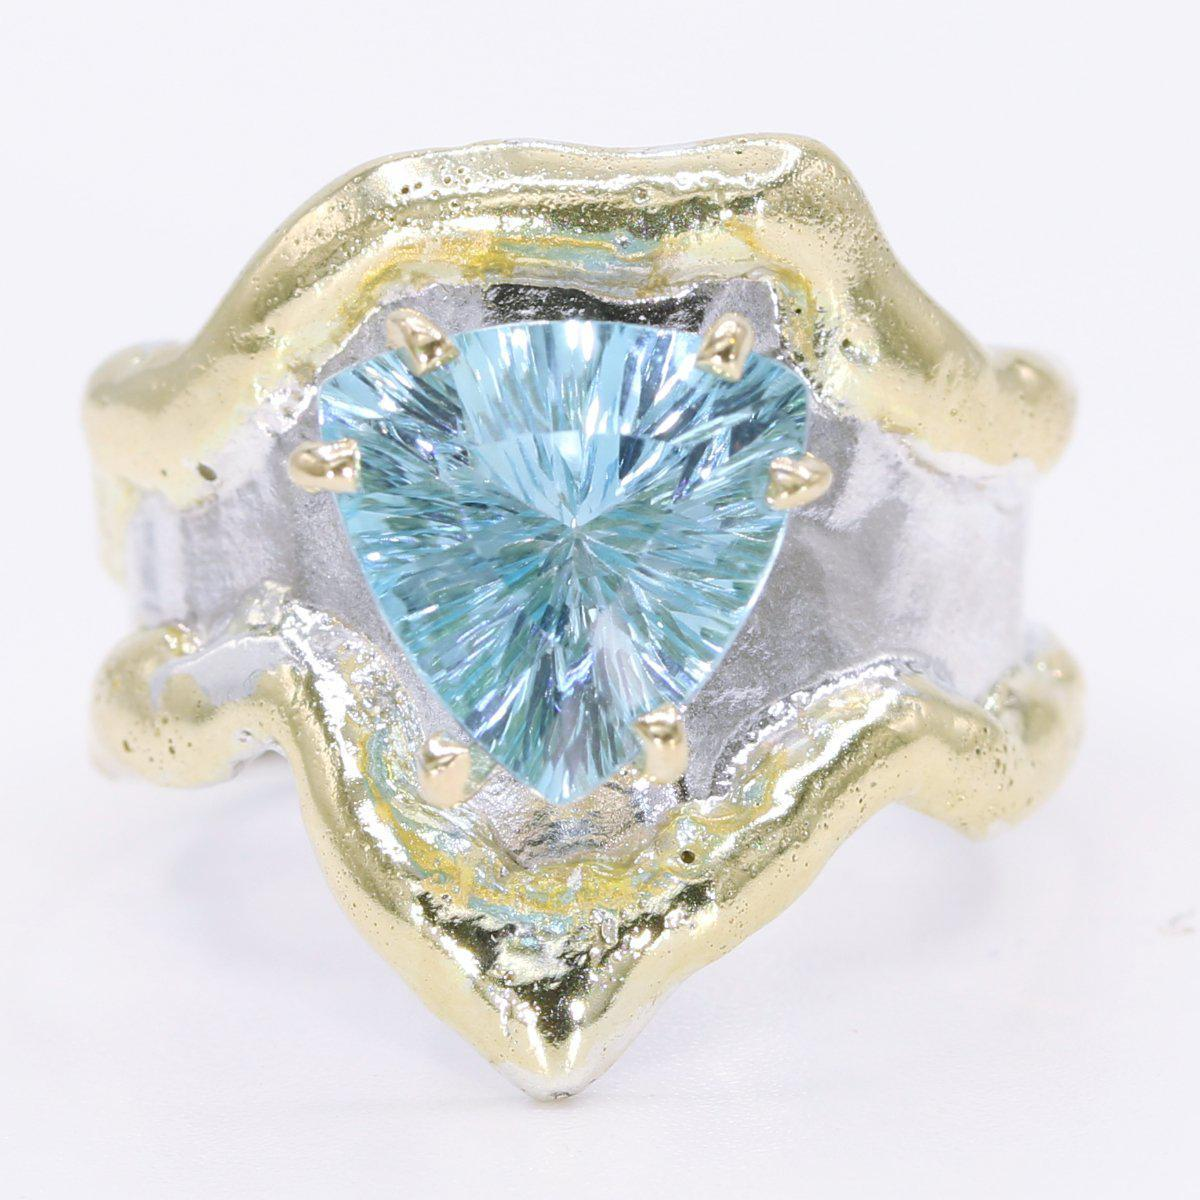 14K Gold & Crystalline Silver Sky Blue Topaz Ring - 34909-Fusion Designs-Renee Taylor Gallery